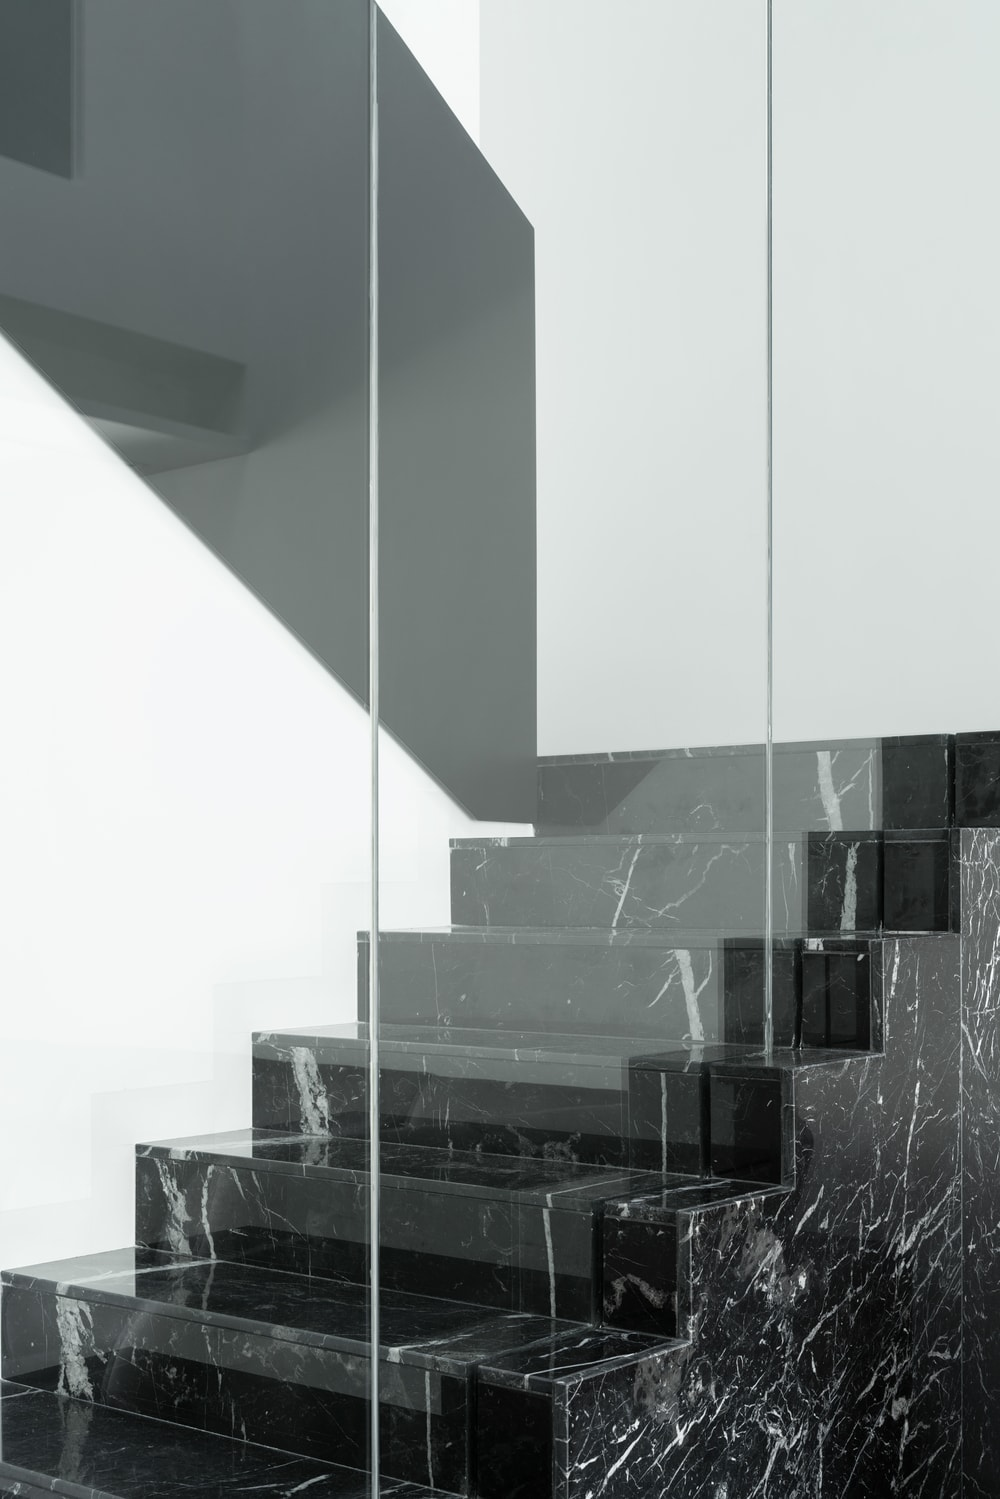 The black marble staircase stands out against the white walls and the glass wall.